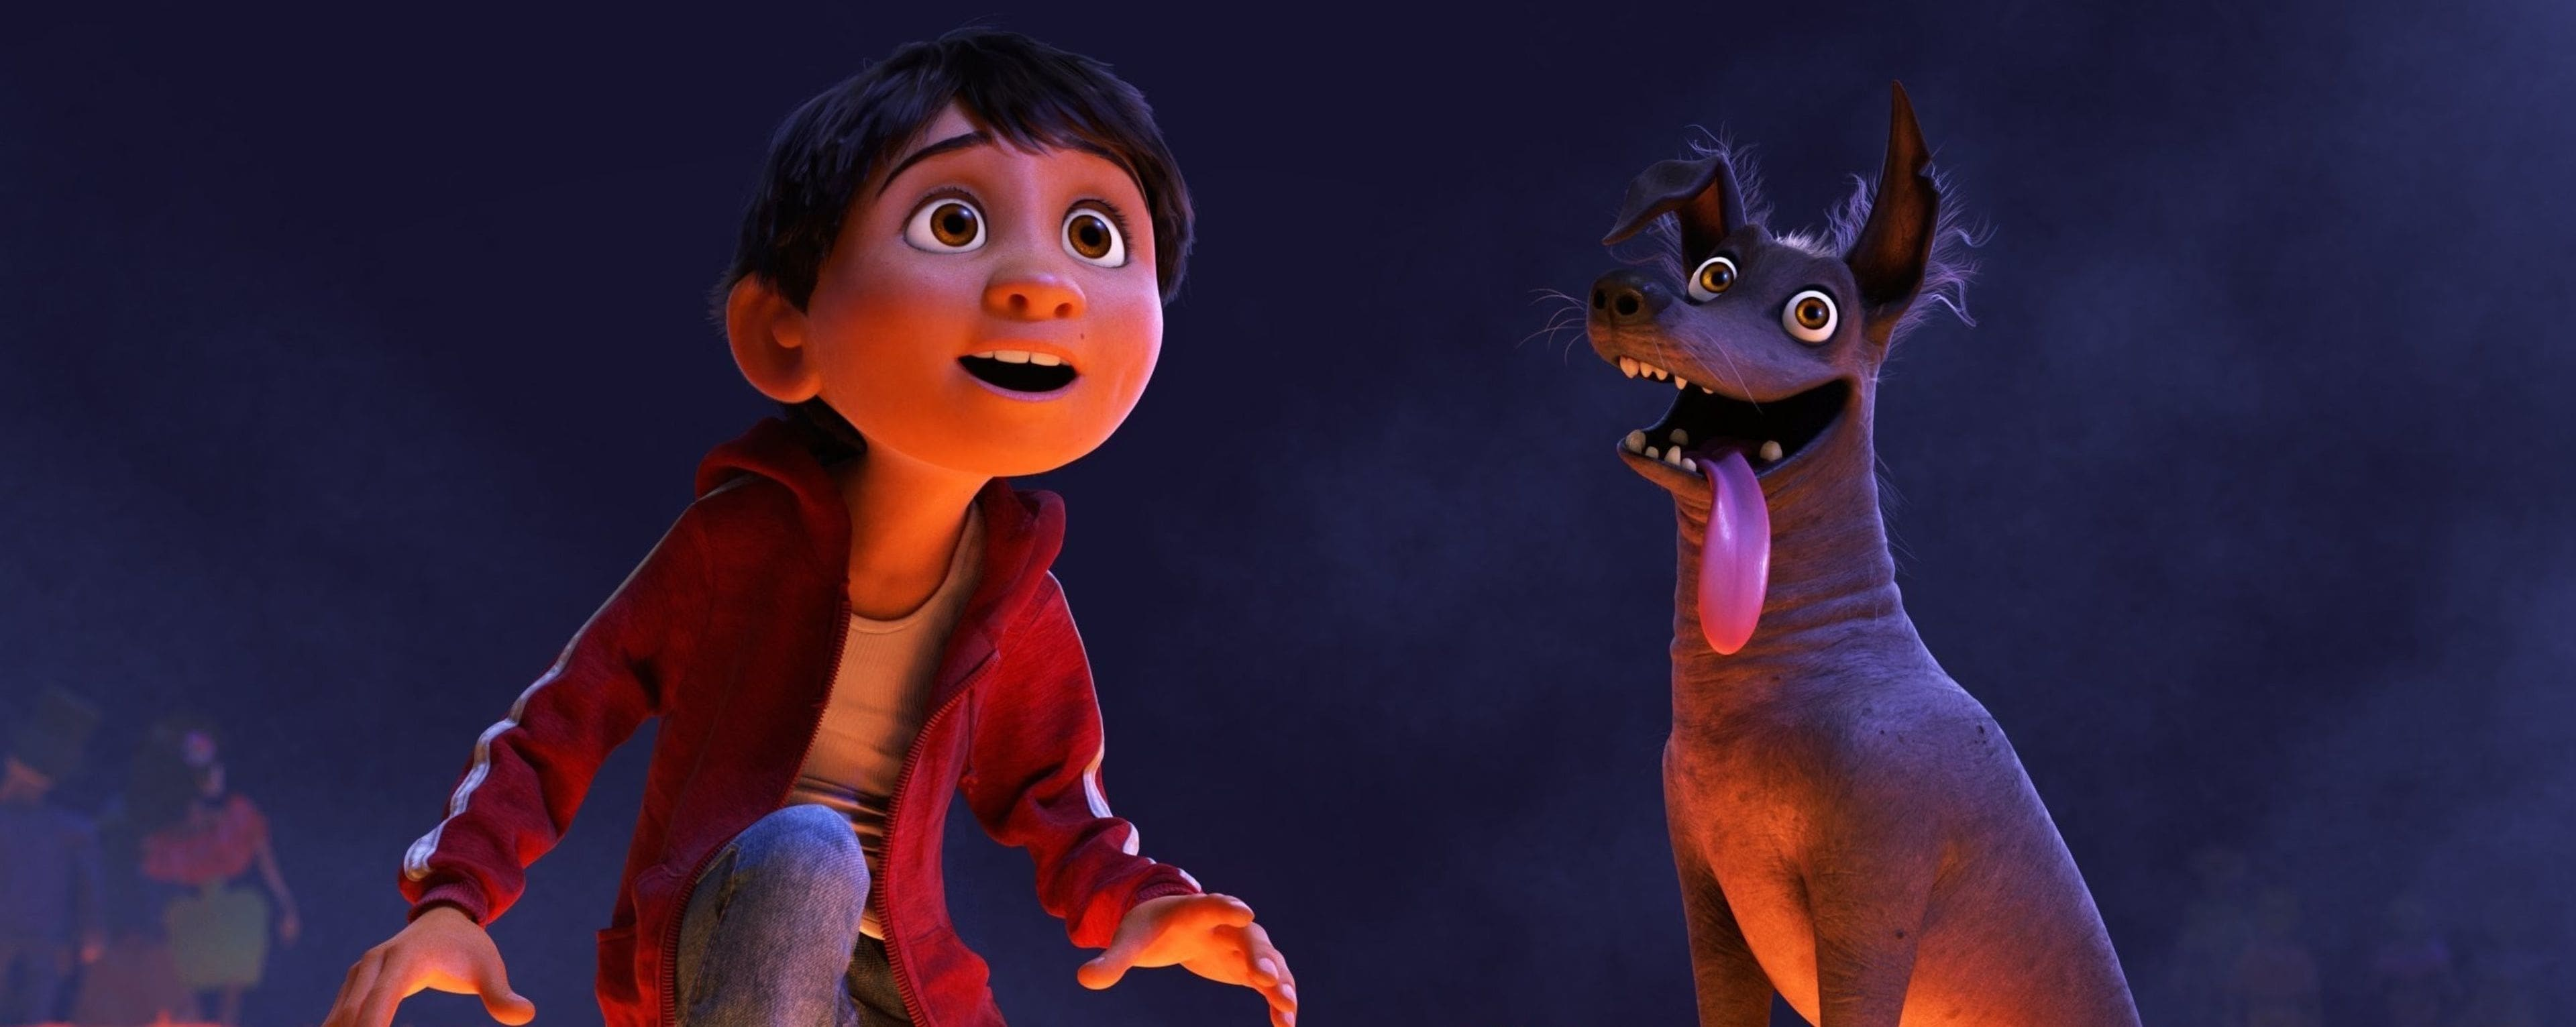 Miguel from coco